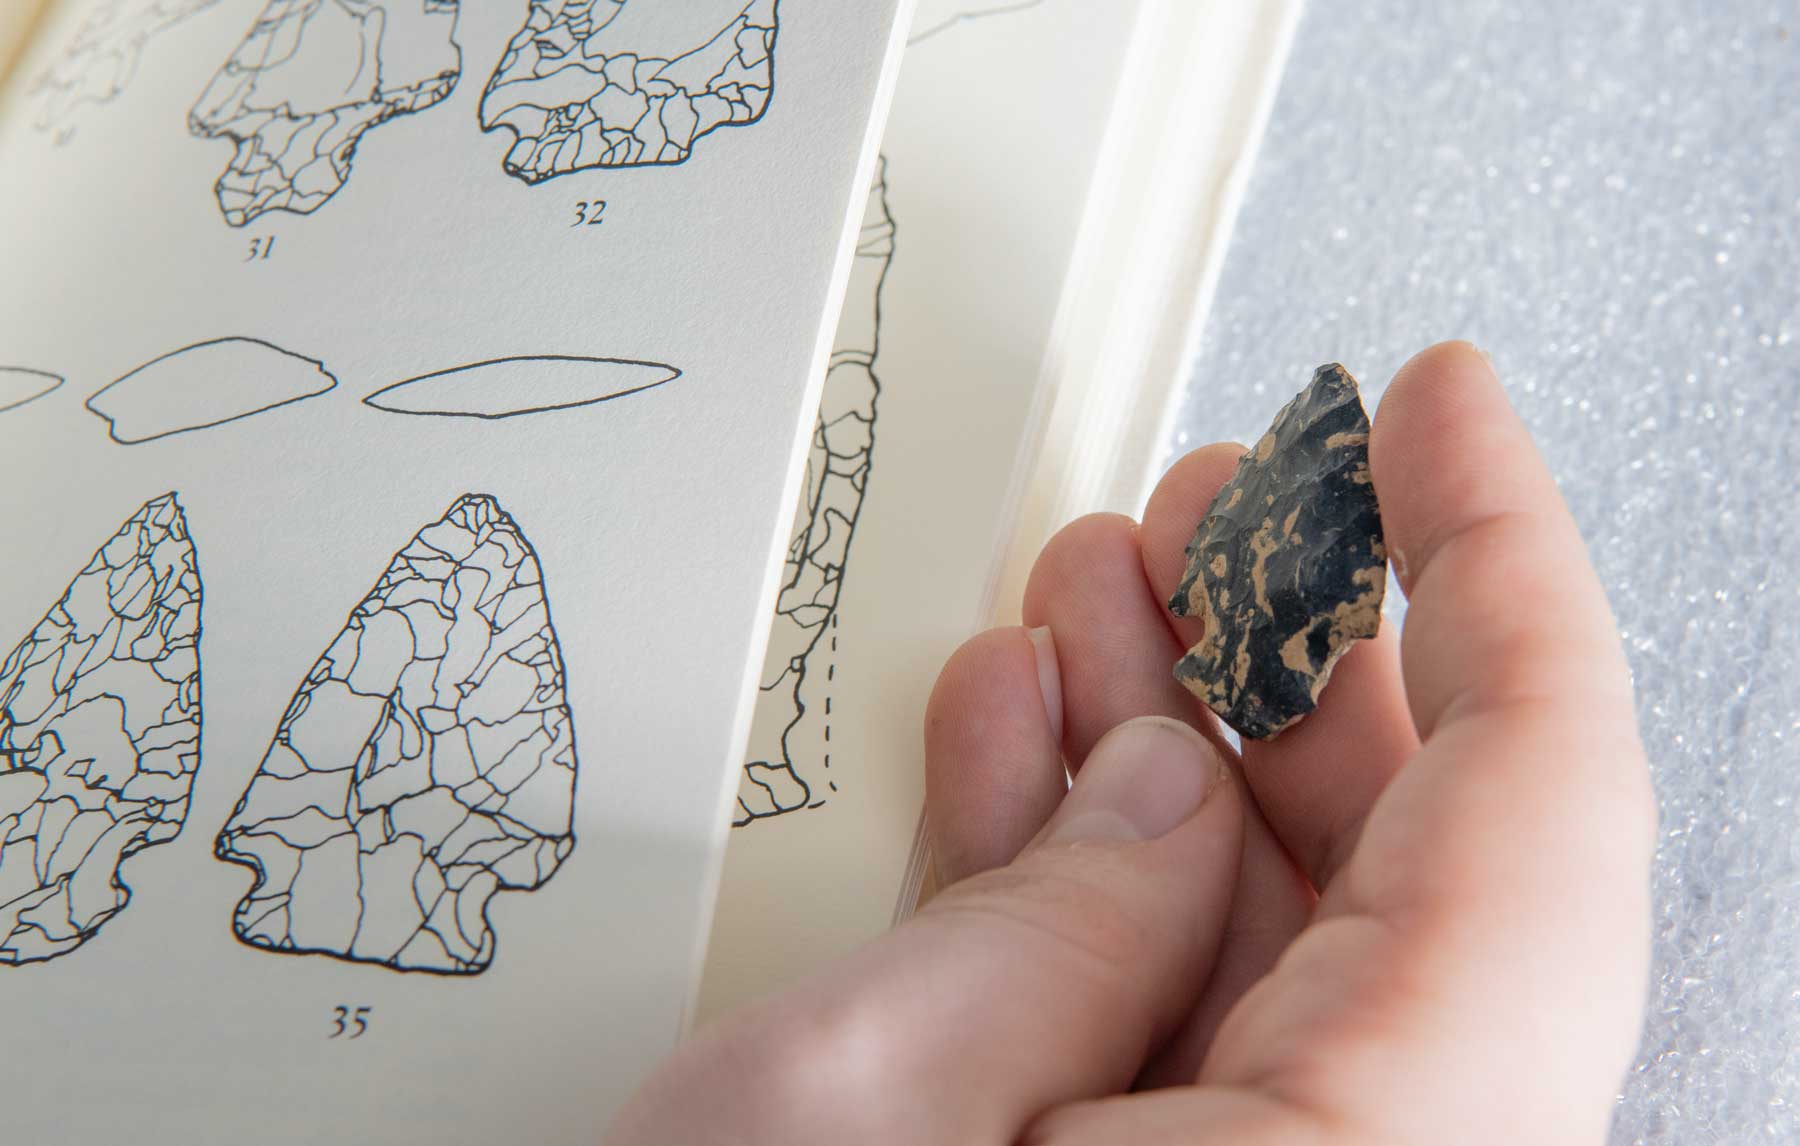 Image of an arrowhead identification book next to a stone arrowhead in a person's hand